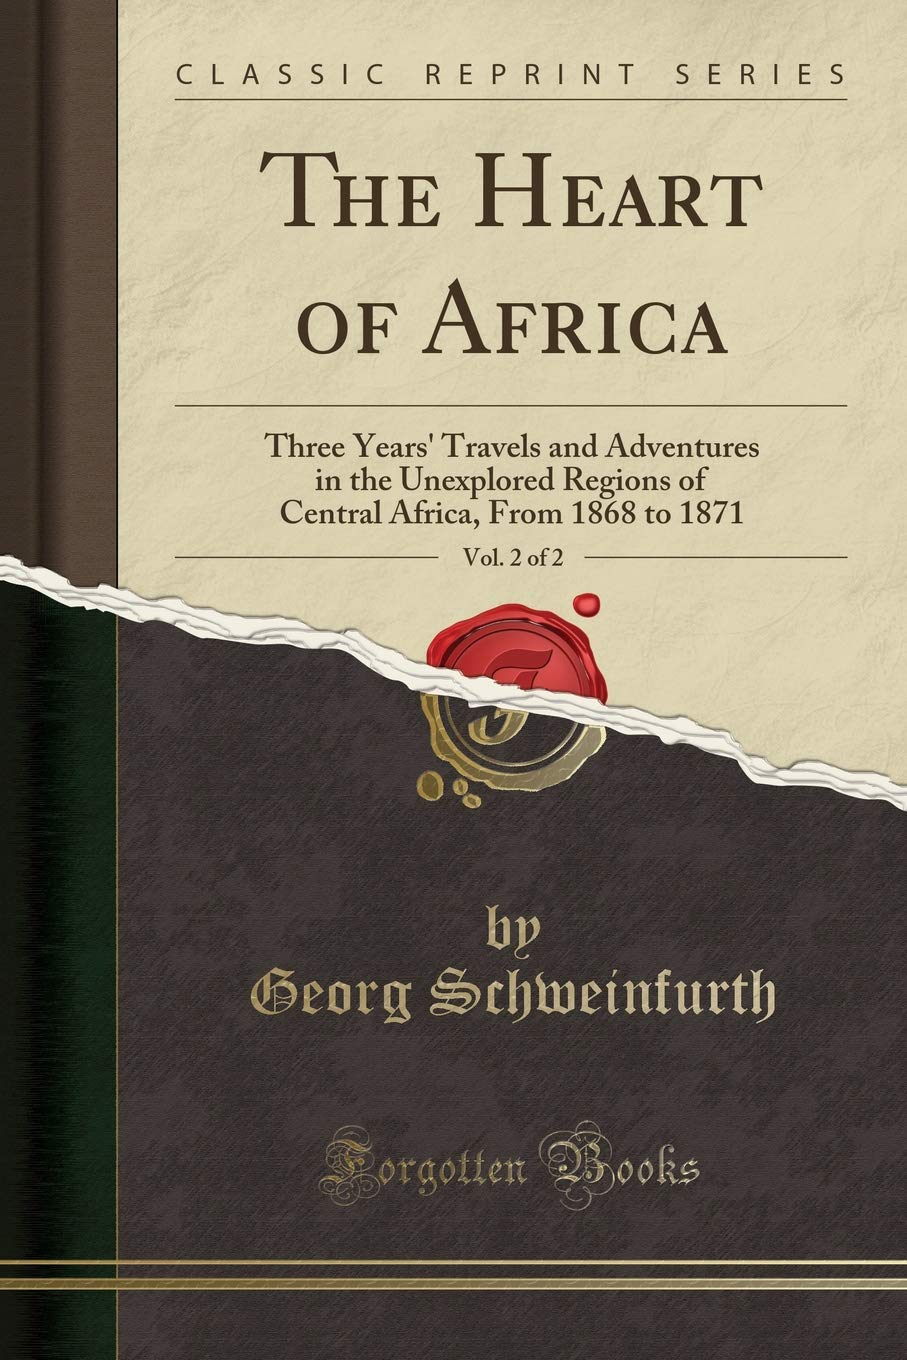 The Heart of Africa, Vol. 2 of 2: Three Years' Travels and Adventures in the Unexplored Regions of Central Africa, From 1868 to 1871 (Classic Reprint) pdf epub